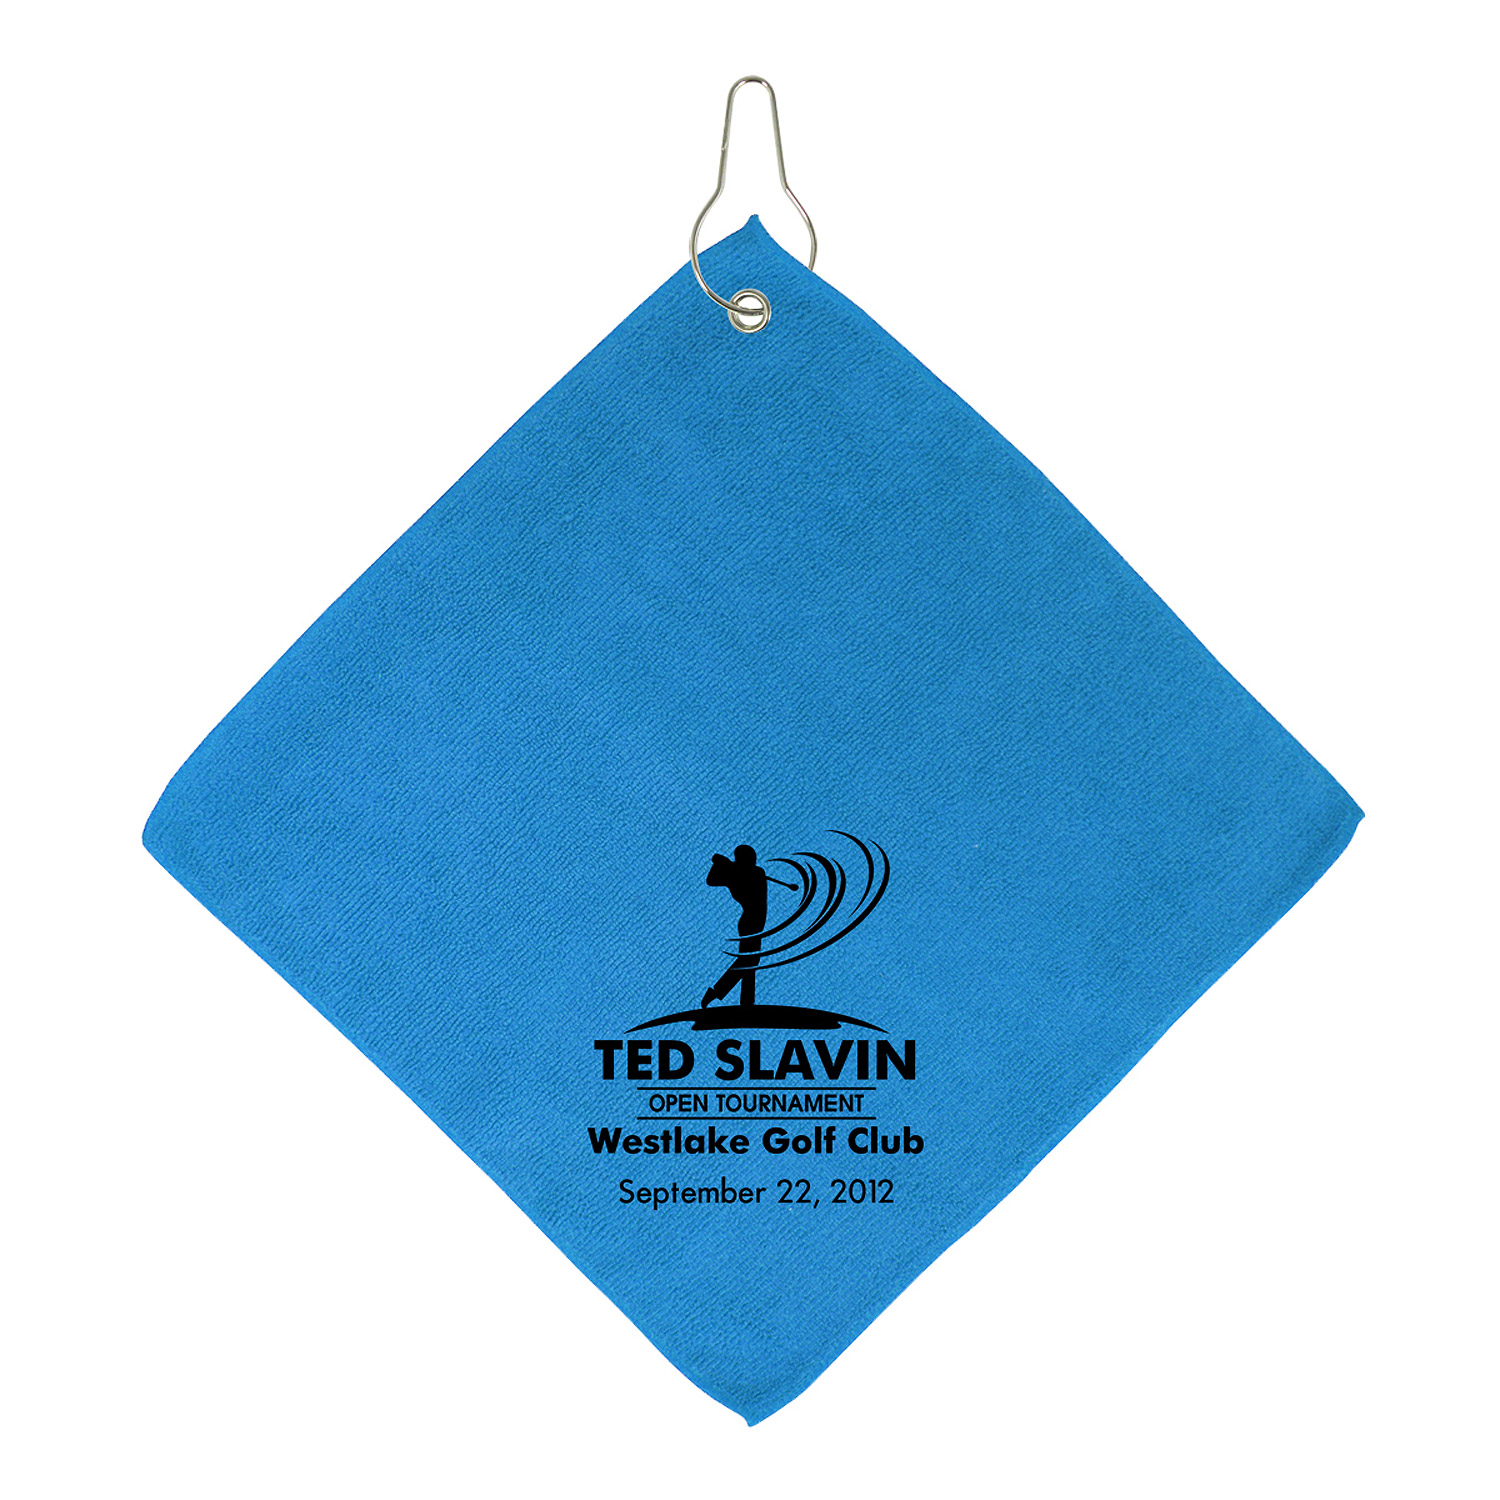 Microfiber Golf Towel With Dye Sublimated Header Push Promotional Standard Augusta Microfibre